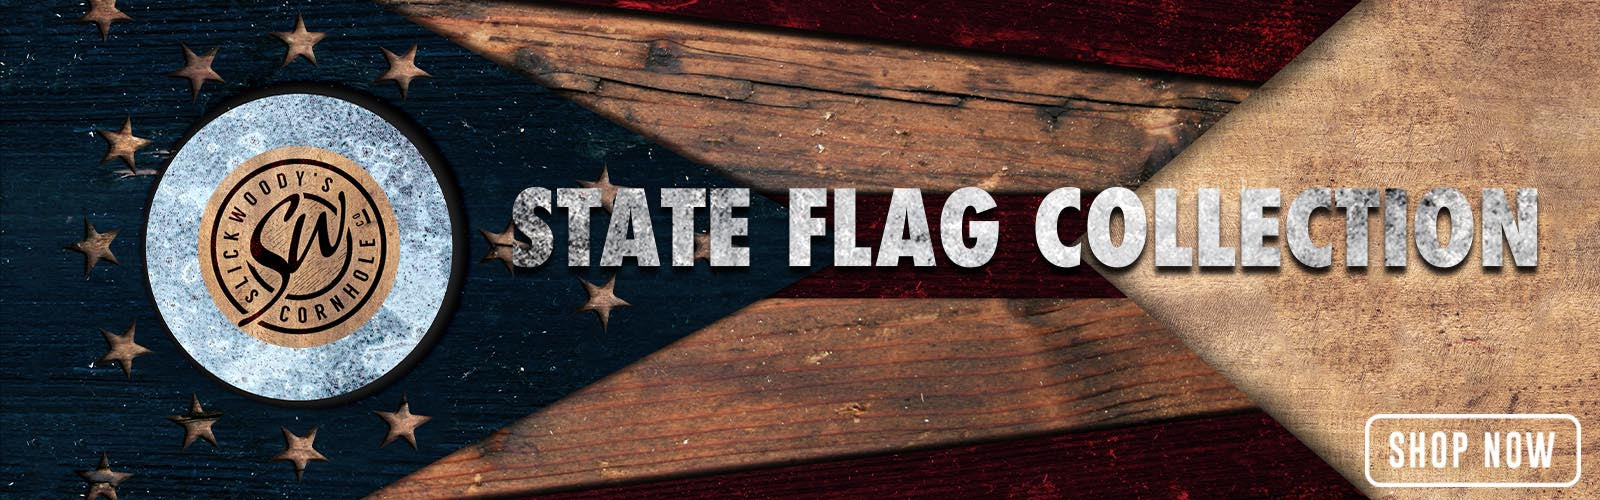 Slick Woody's state flag cornhole boards